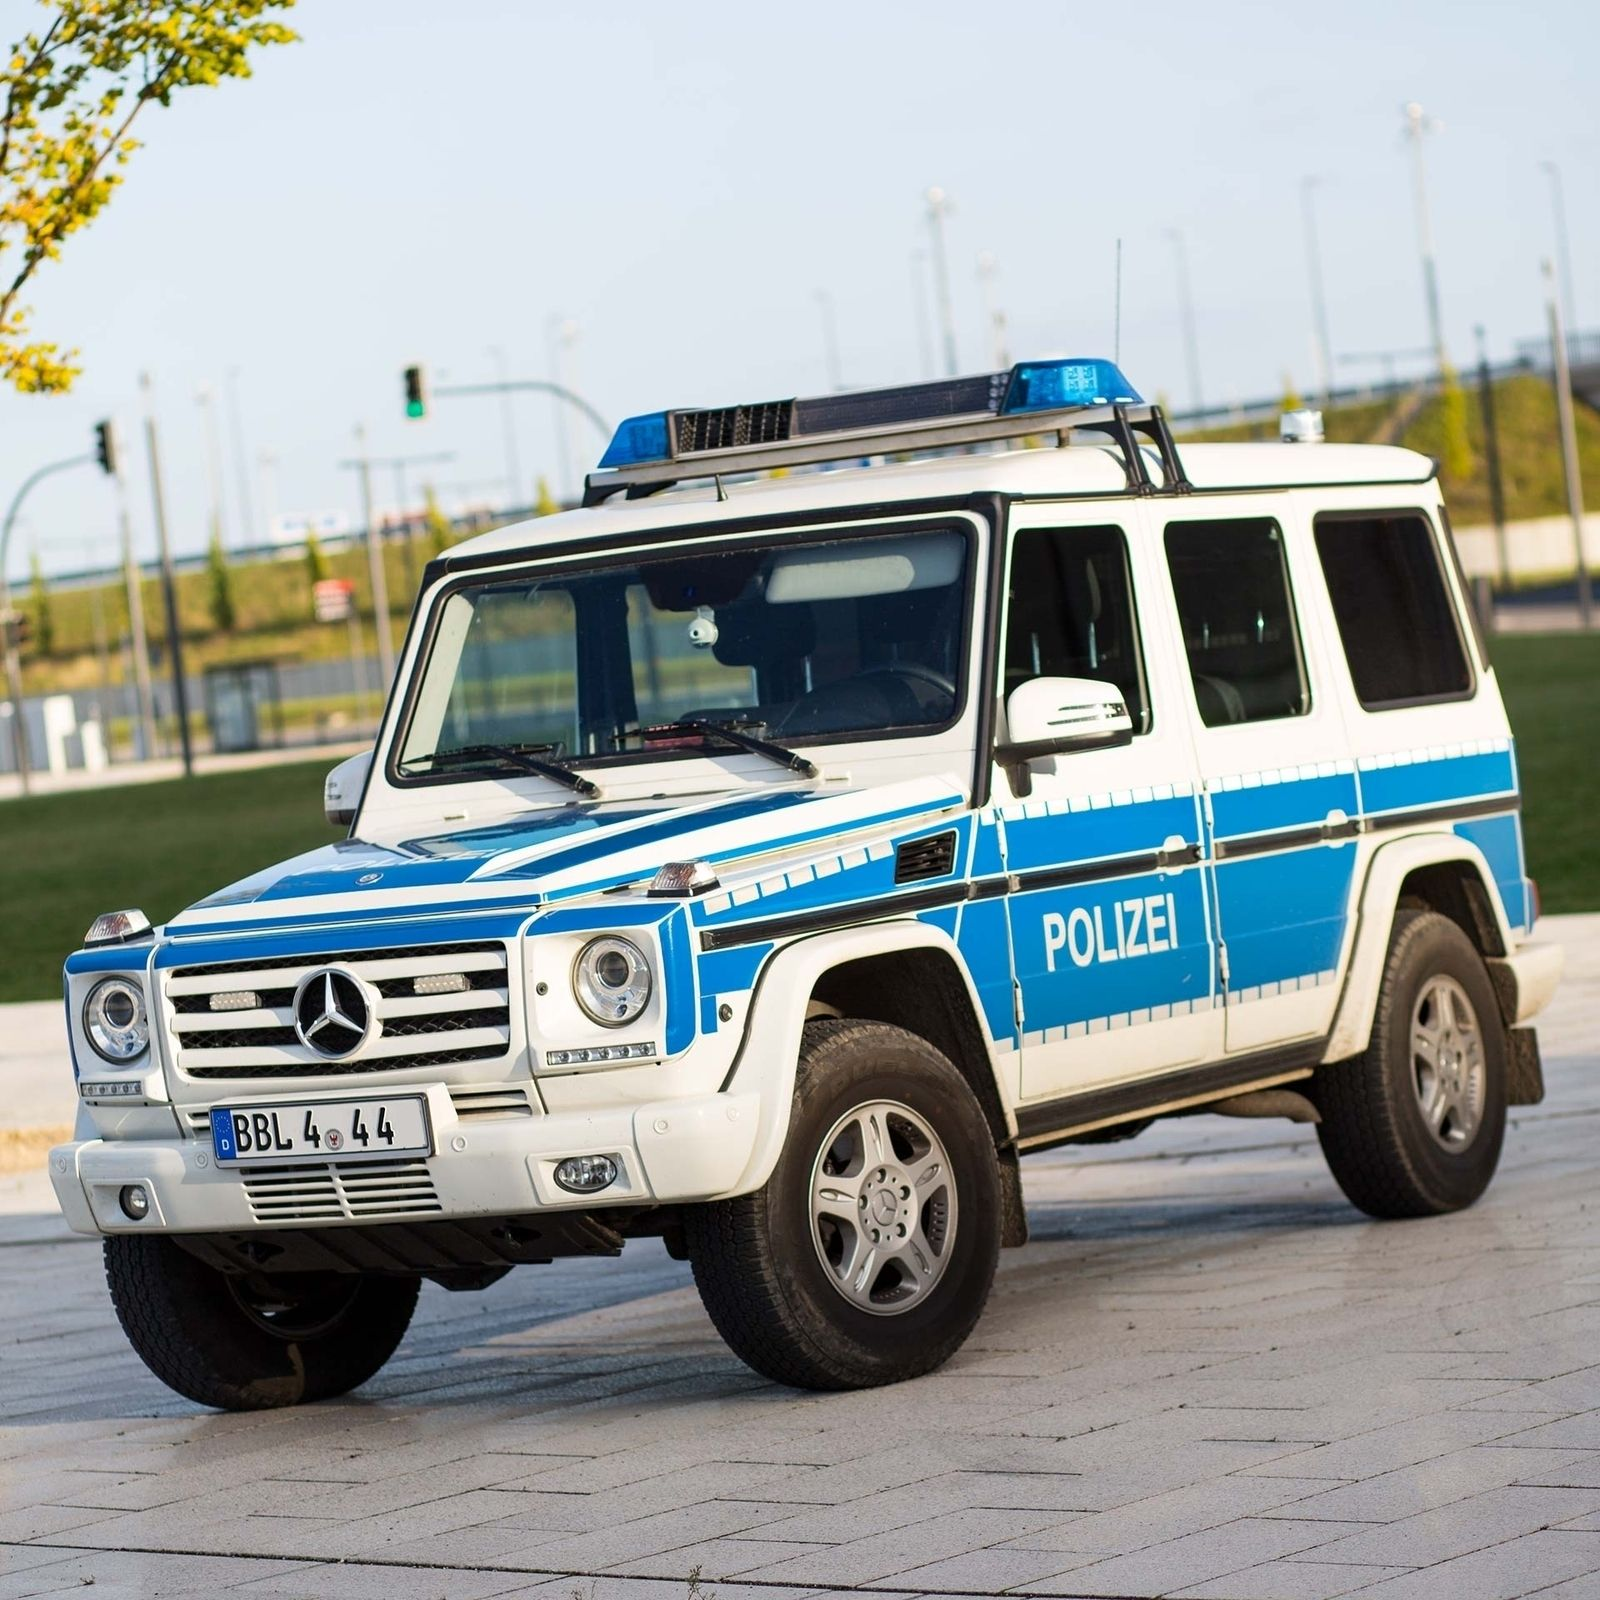 The german Police ficers who are driving this nice Mercedes Benz G